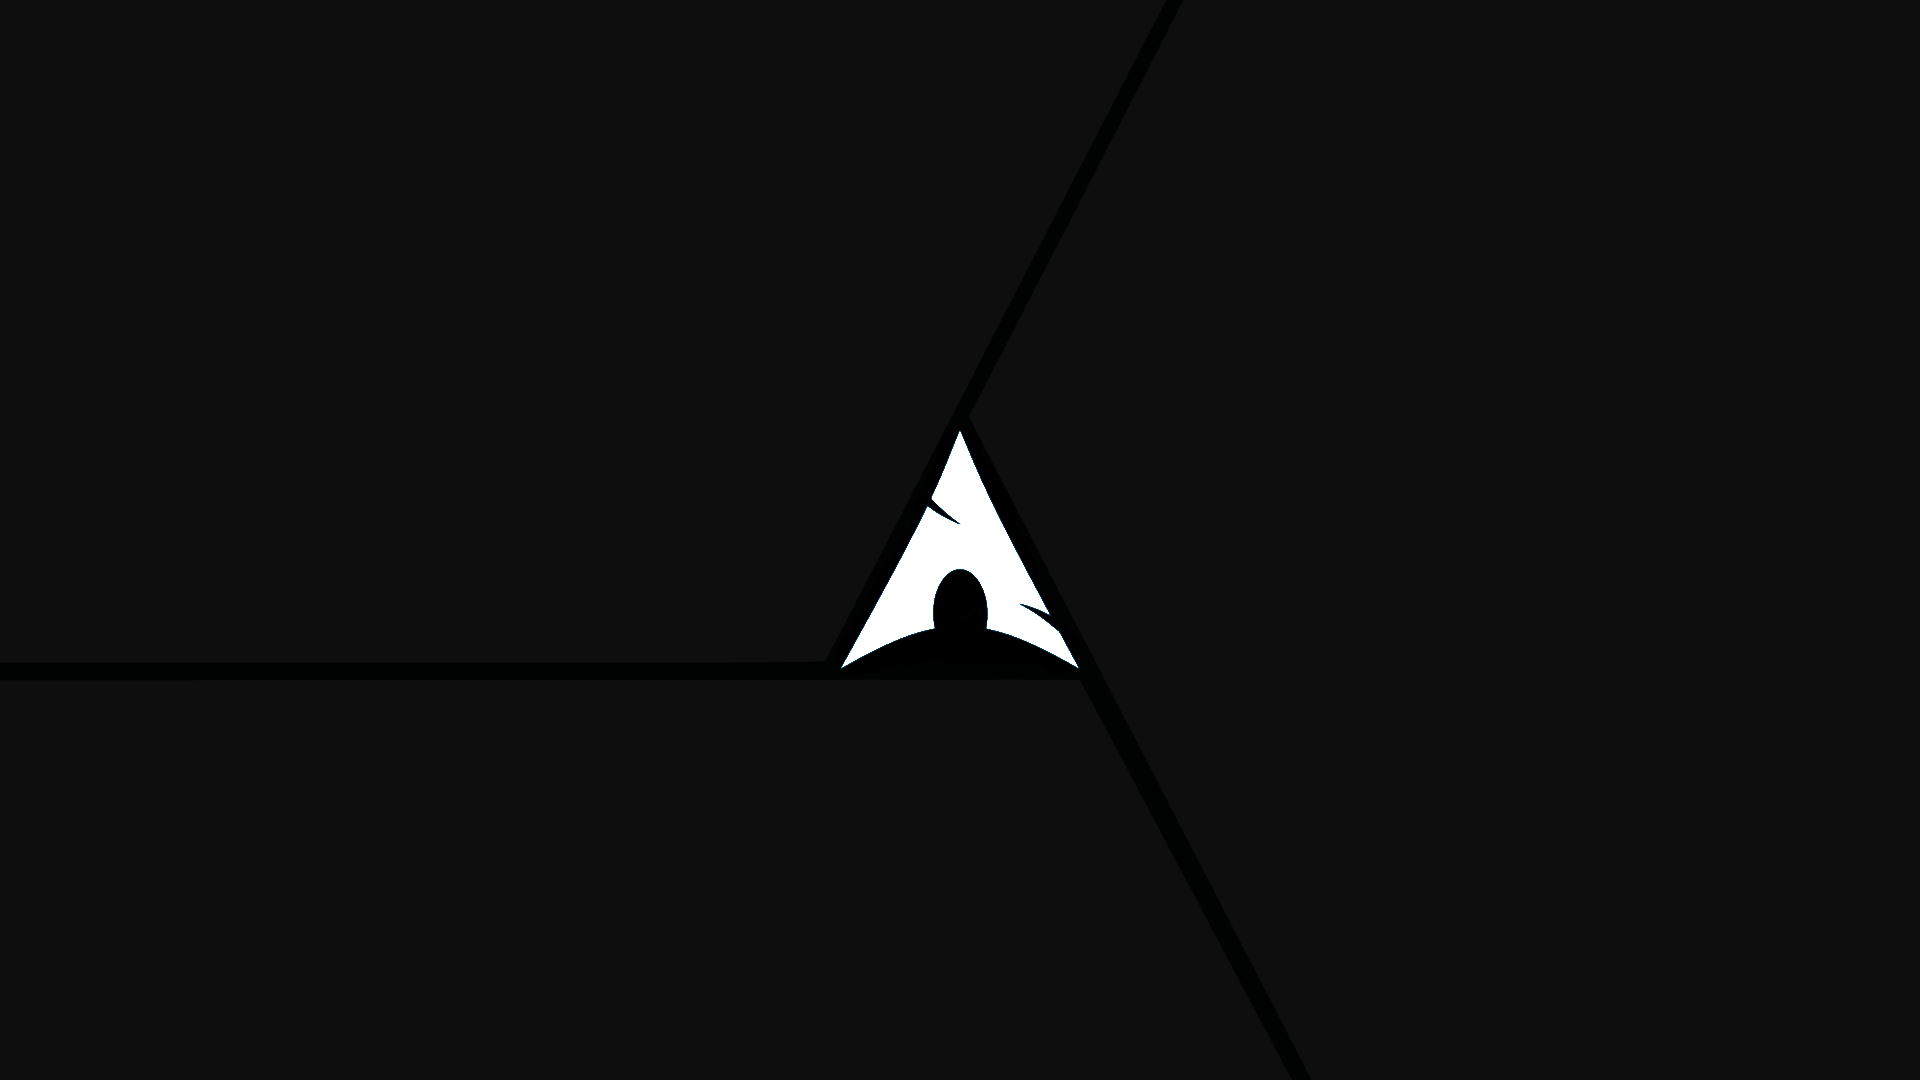 Arch Linux HD, HD Computer, 4k Wallpapers, Images ...